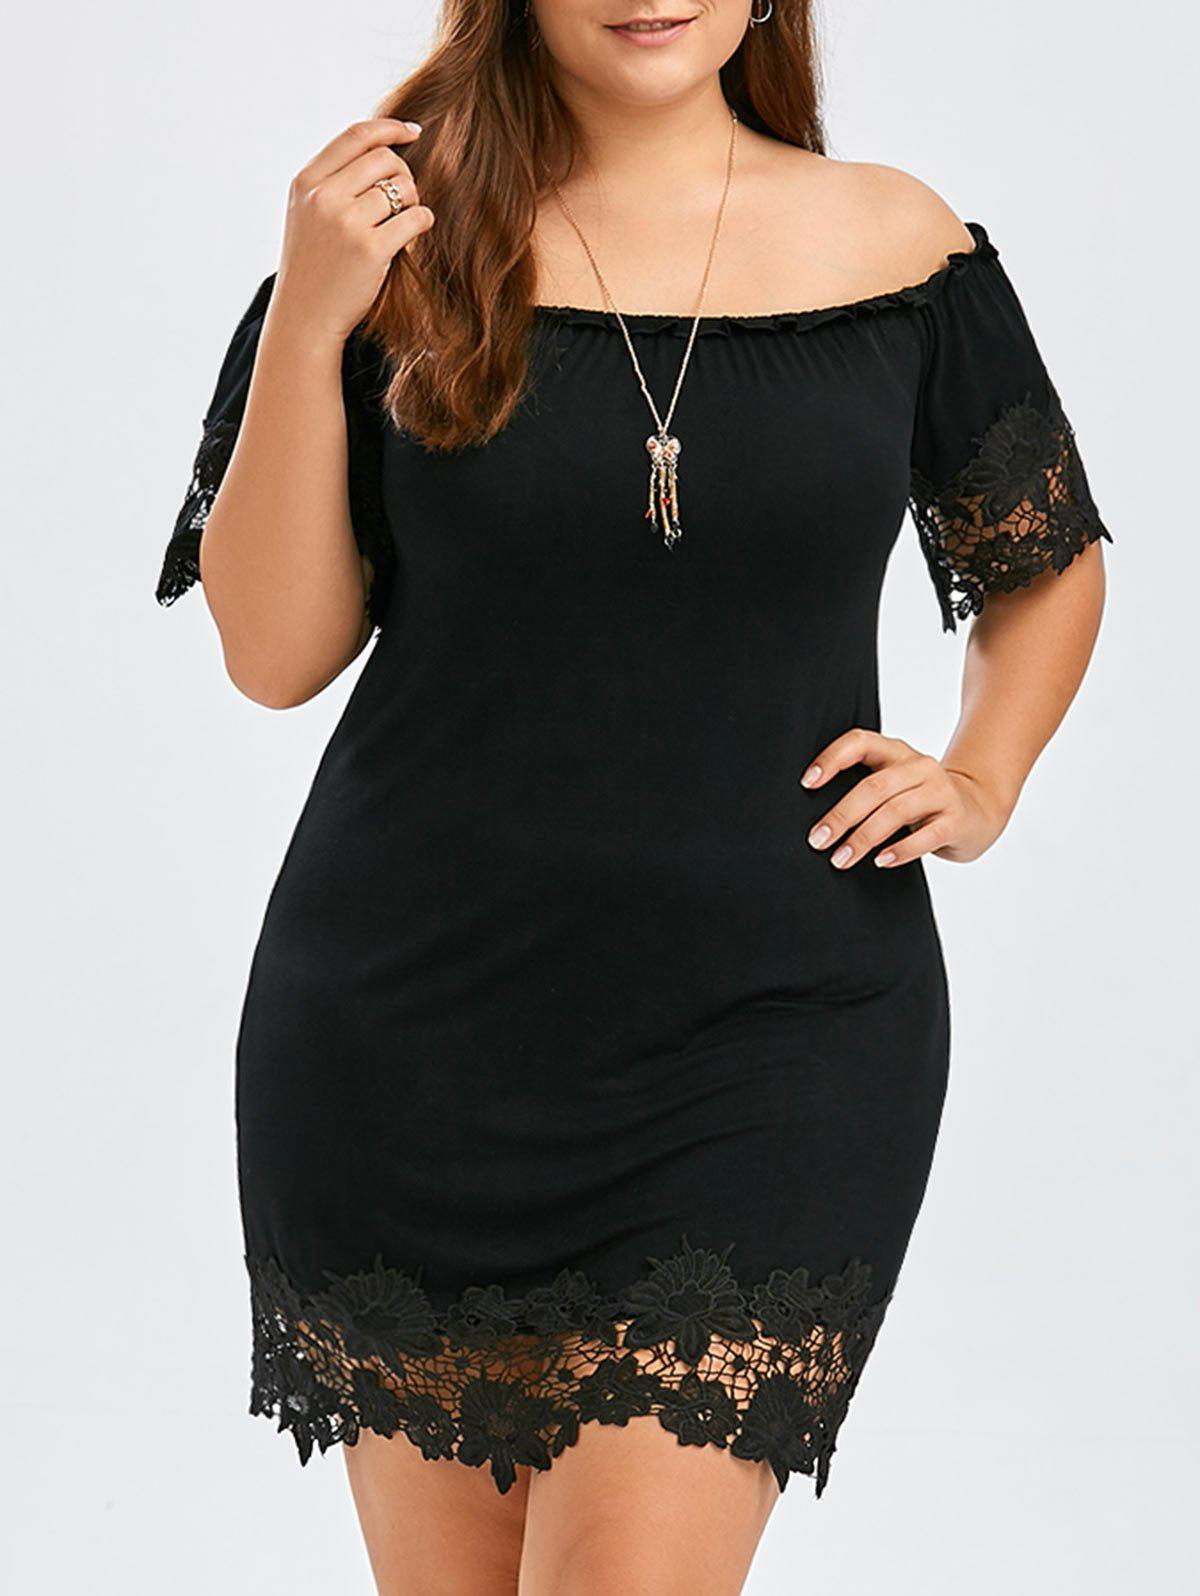 Off Shoulder Plus Size Cocktail Mini Tight DressWOMEN<br><br>Size: XL; Color: BLACK; Style: Brief; Material: Polyester,Spandex; Silhouette: Sheath; Dresses Length: Mini; Neckline: Off The Shoulder; Sleeve Length: Short Sleeves; Pattern Type: Floral; With Belt: No; Season: Summer; Weight: 0.3500kg; Package Contents: 1 x Dress;